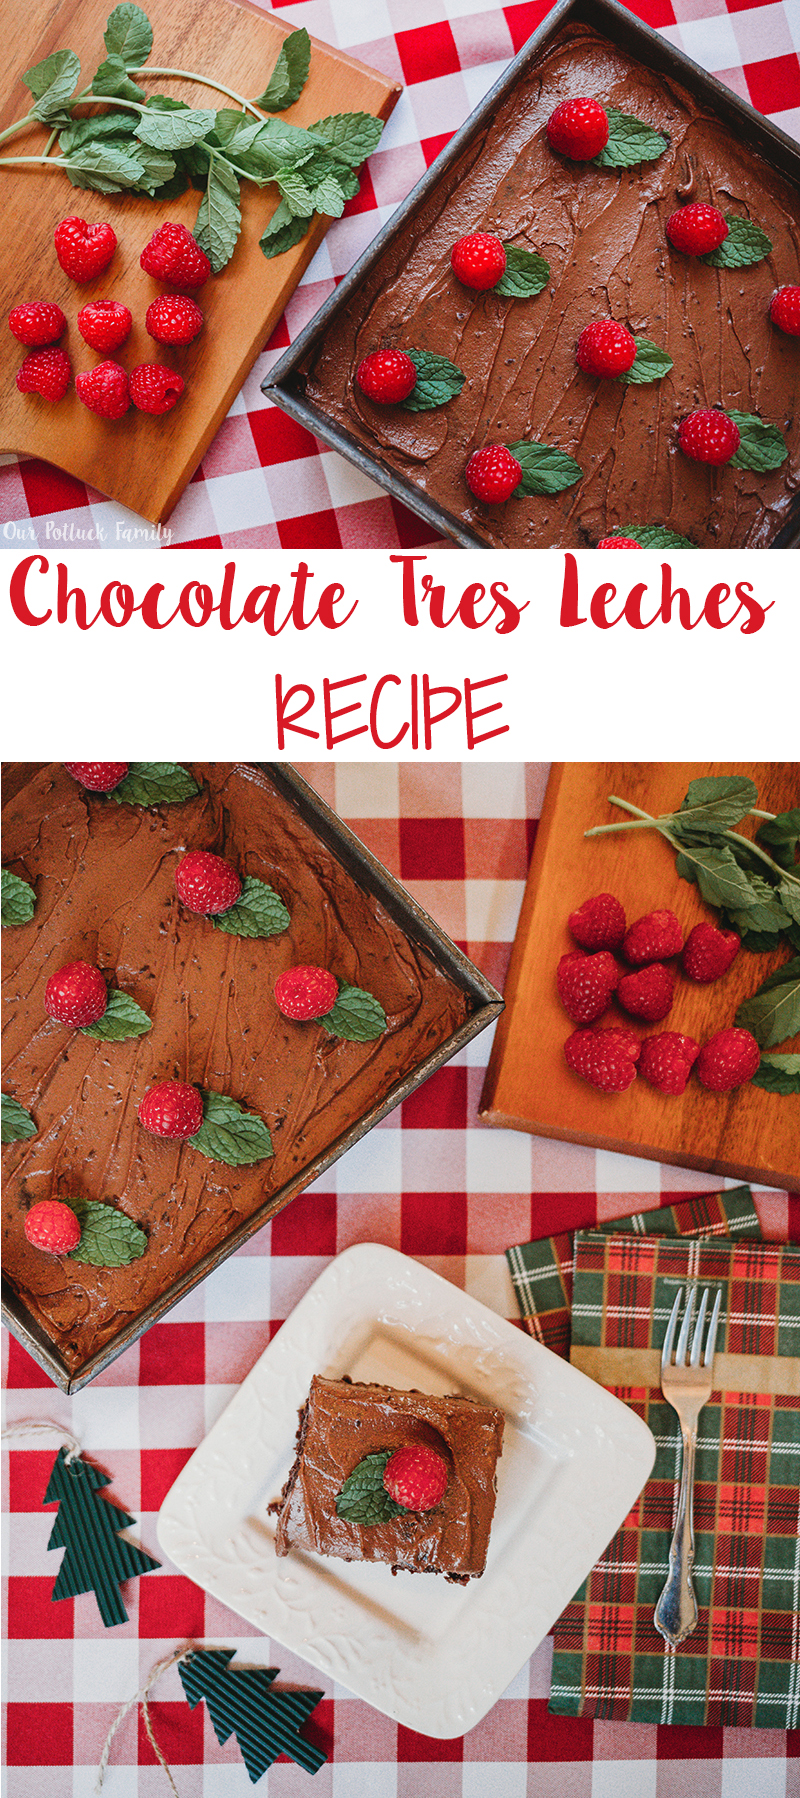 Chocolate Tres Leches Recipe